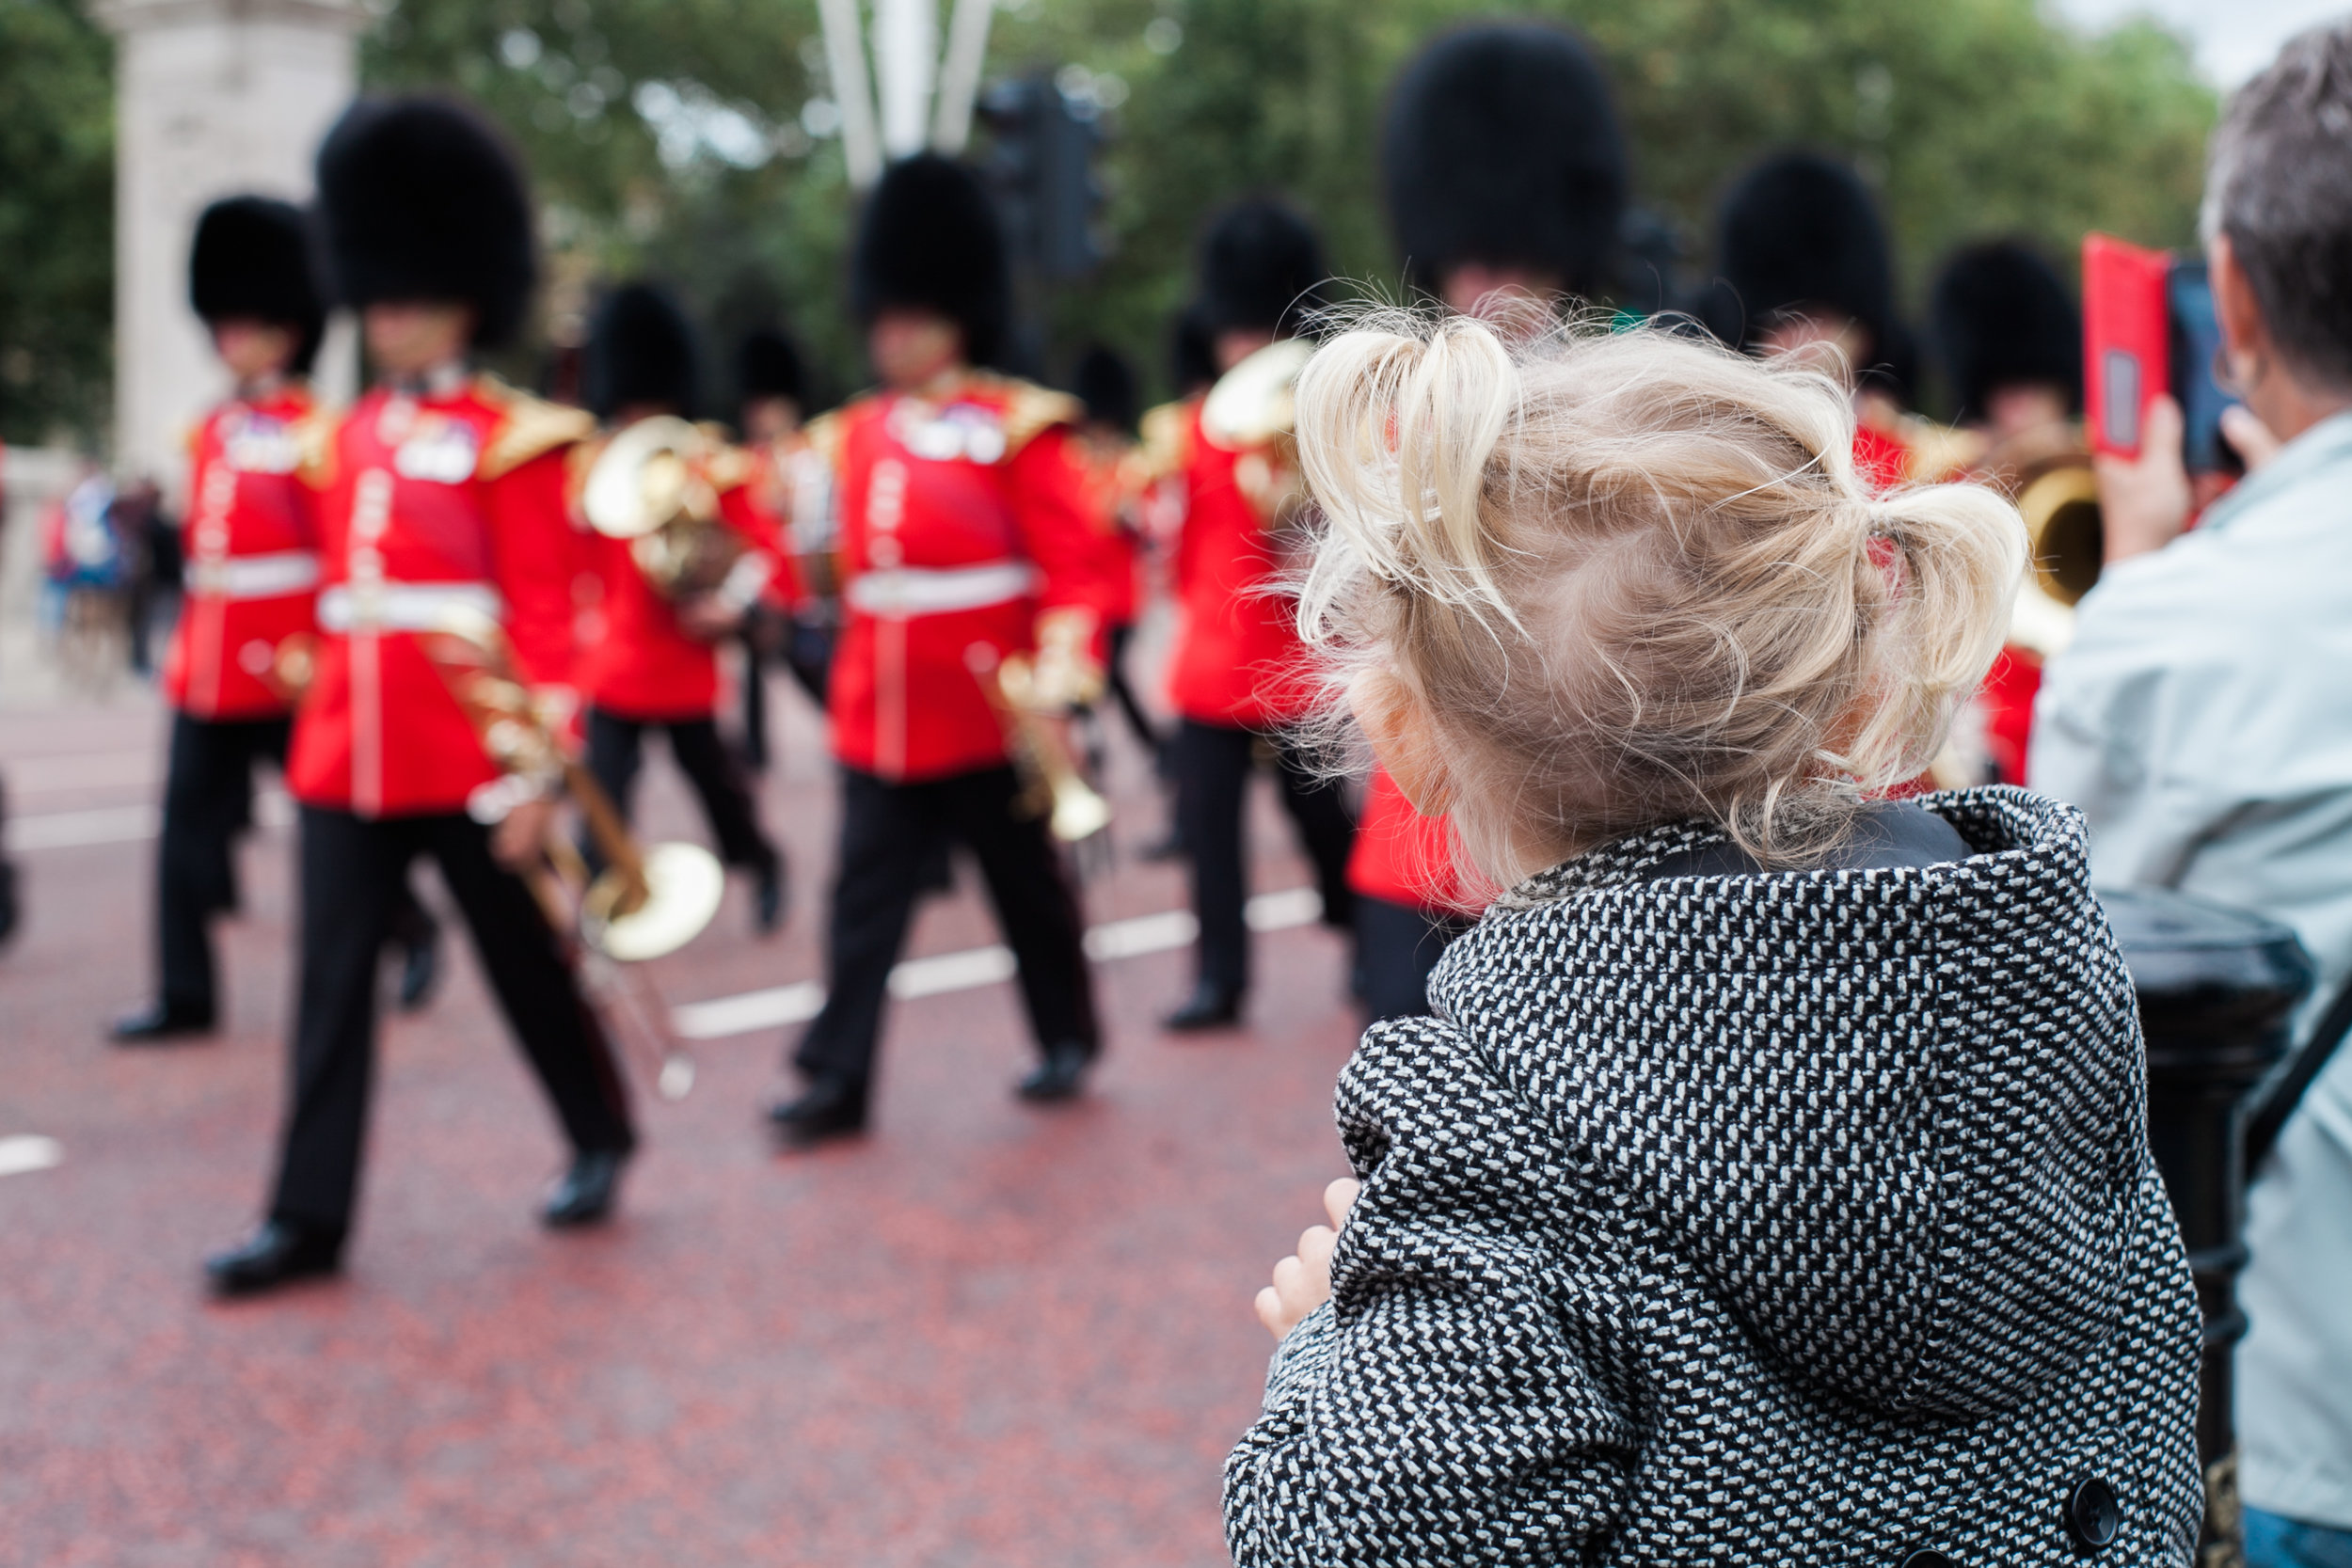 day_two_london (21 of 164).jpg